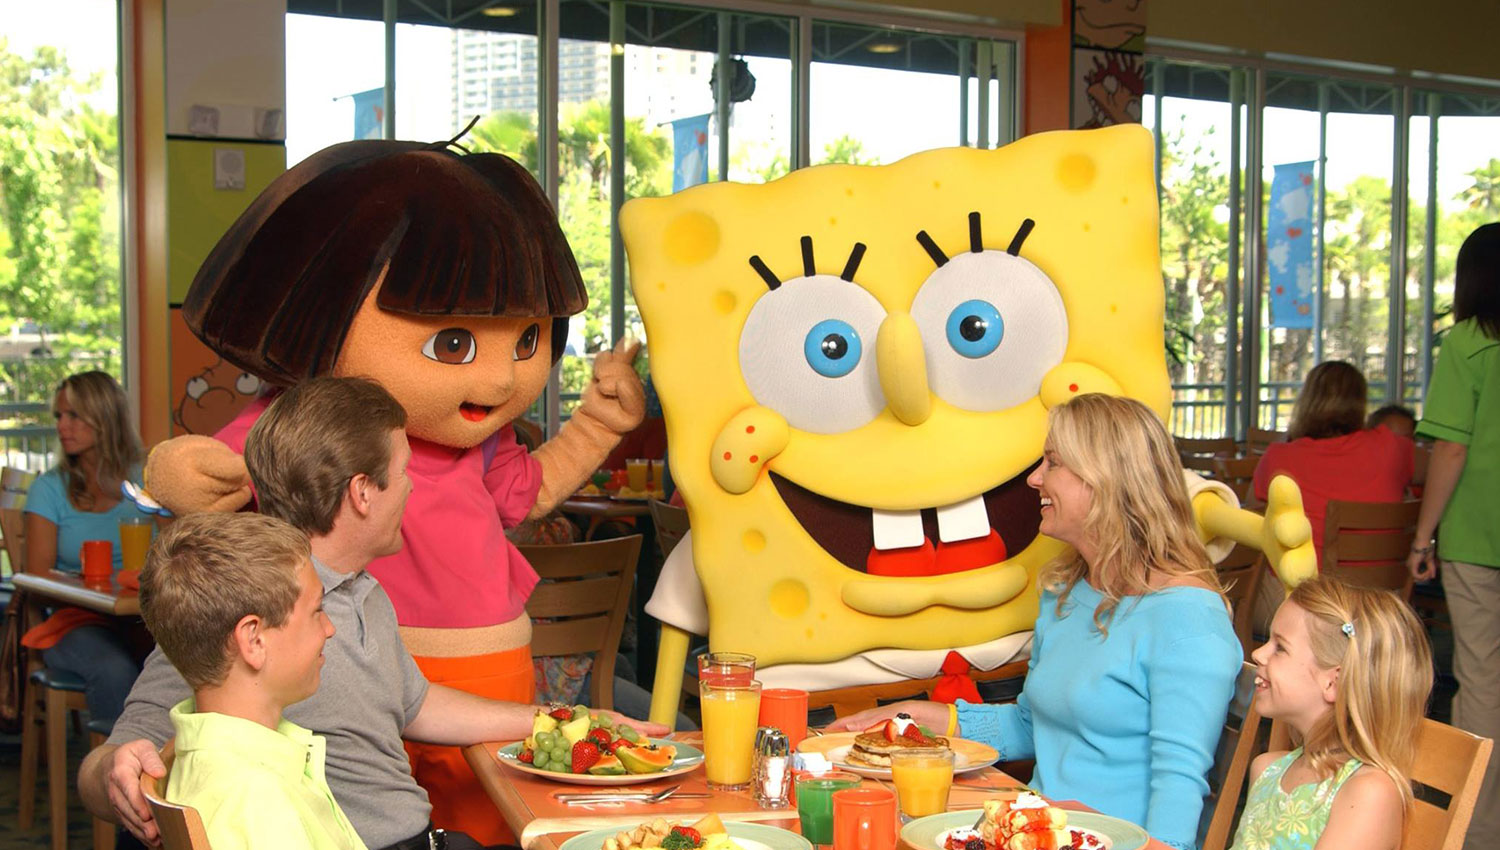 meet disney charaters while eating food with the family at a theme park